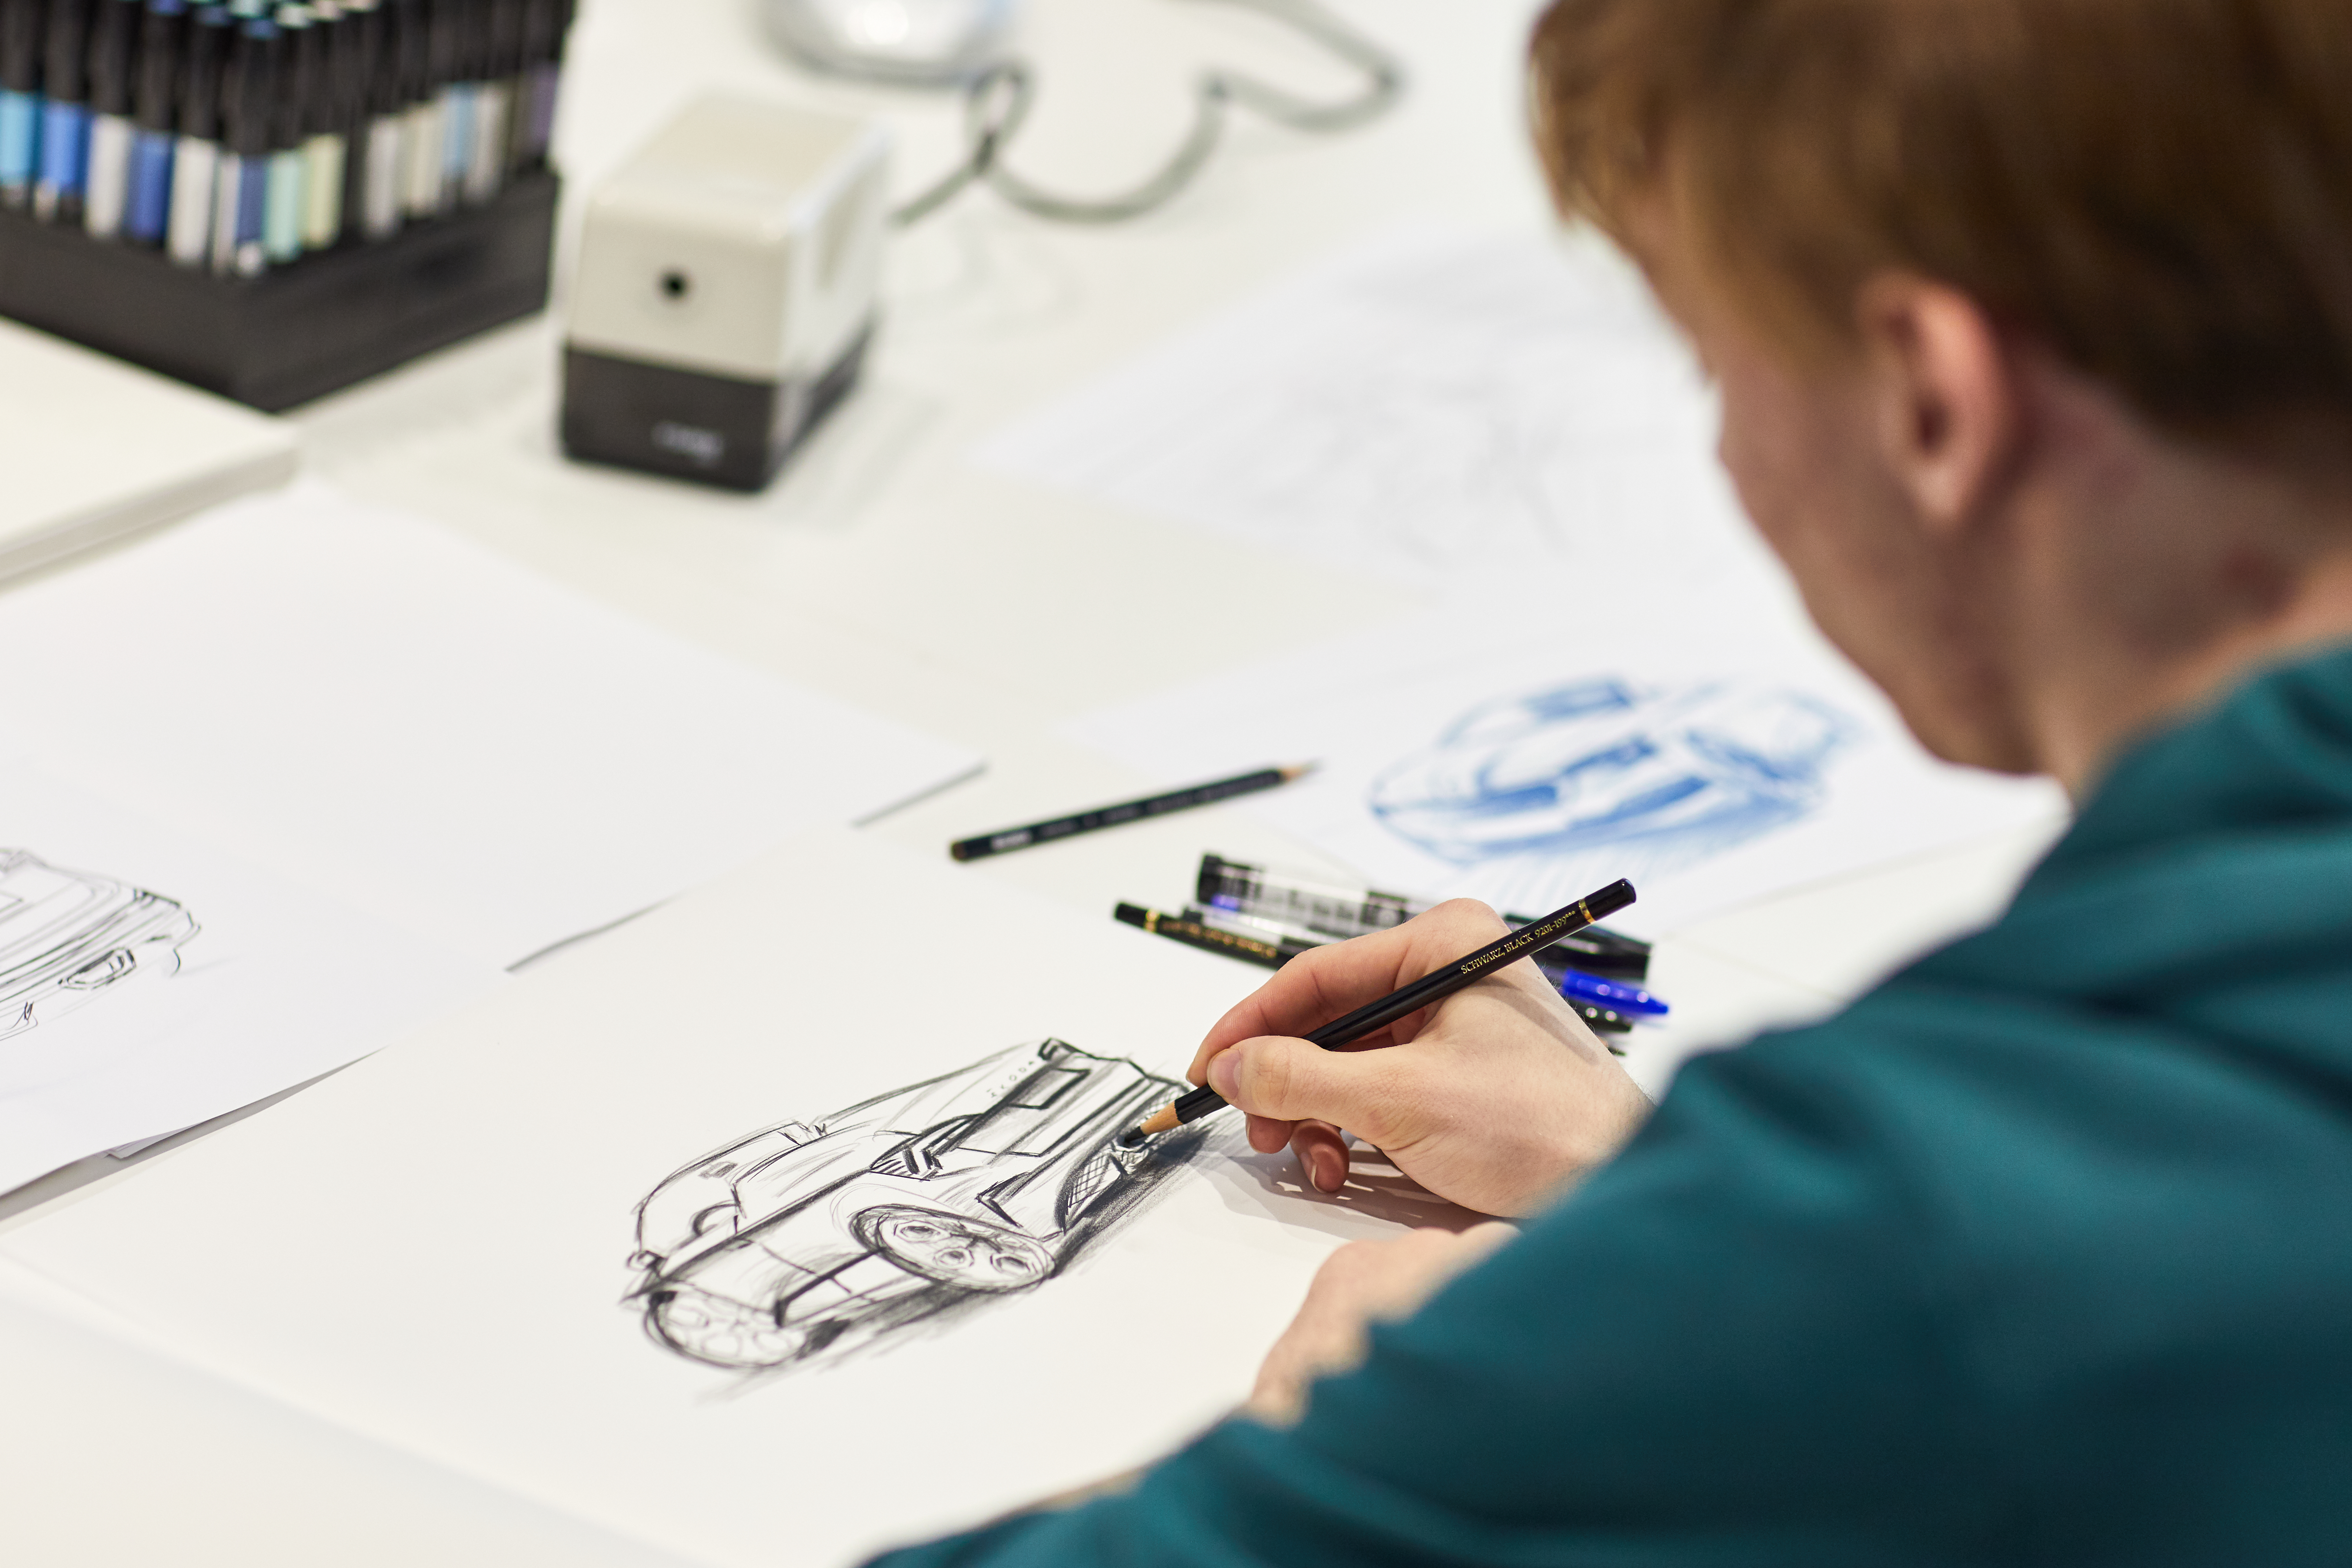 Seventh SKODA Student Concept Car is taking shape: Students are working on a Spider variant of the SKODA SCALA - Image 3